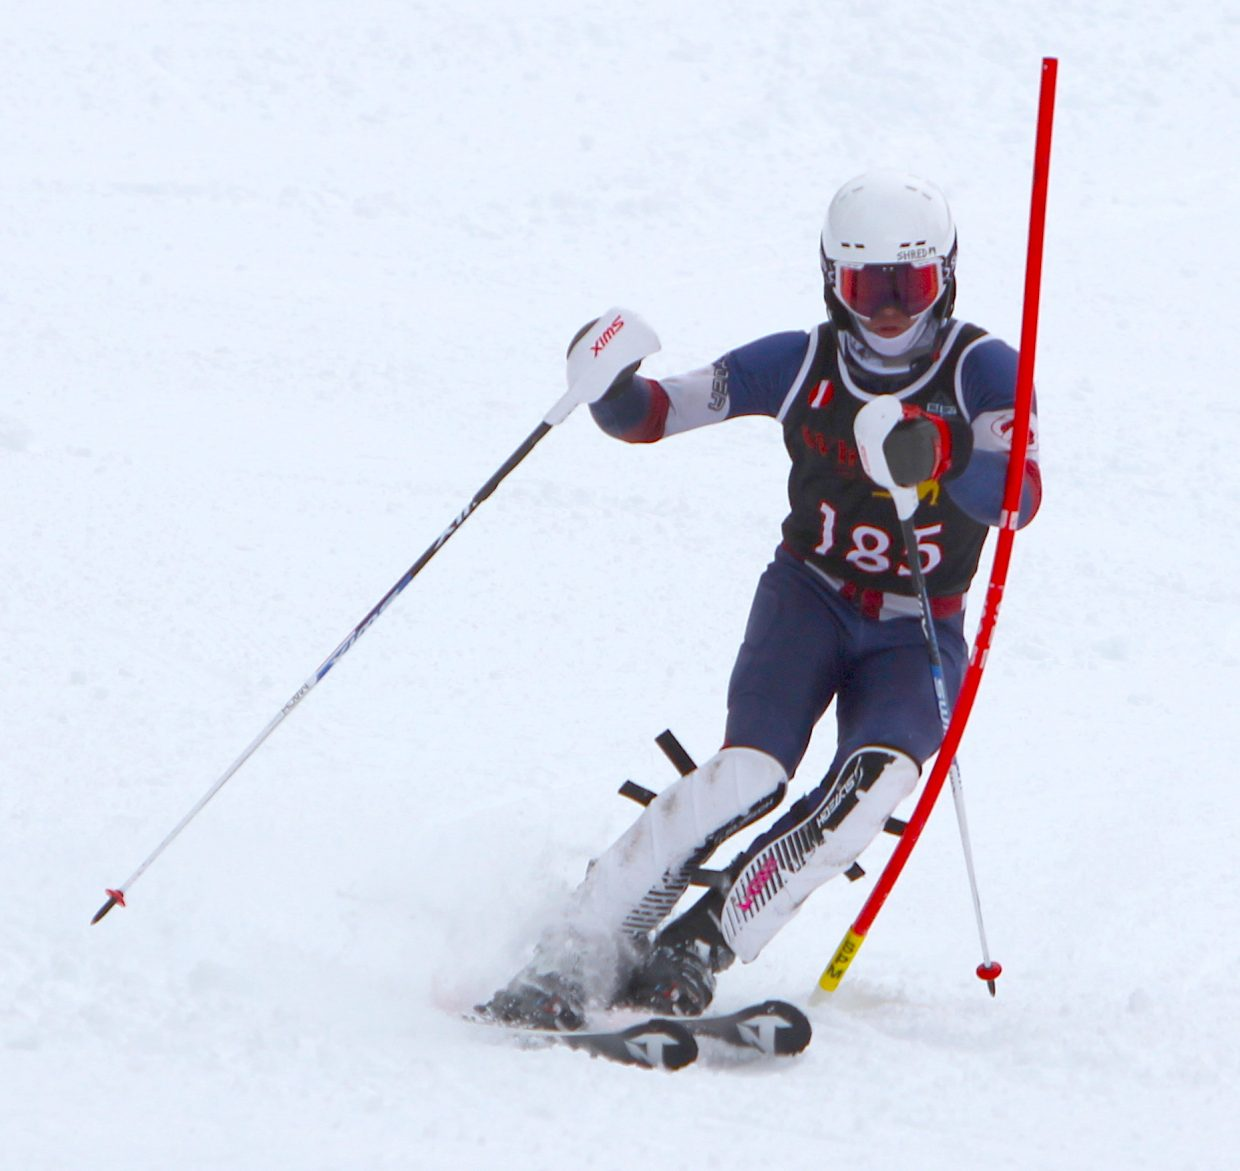 Whittell senior Gunnar Barnwell negotiates a gate during his first run Monday on his way to winning the alpine state slalom championship.